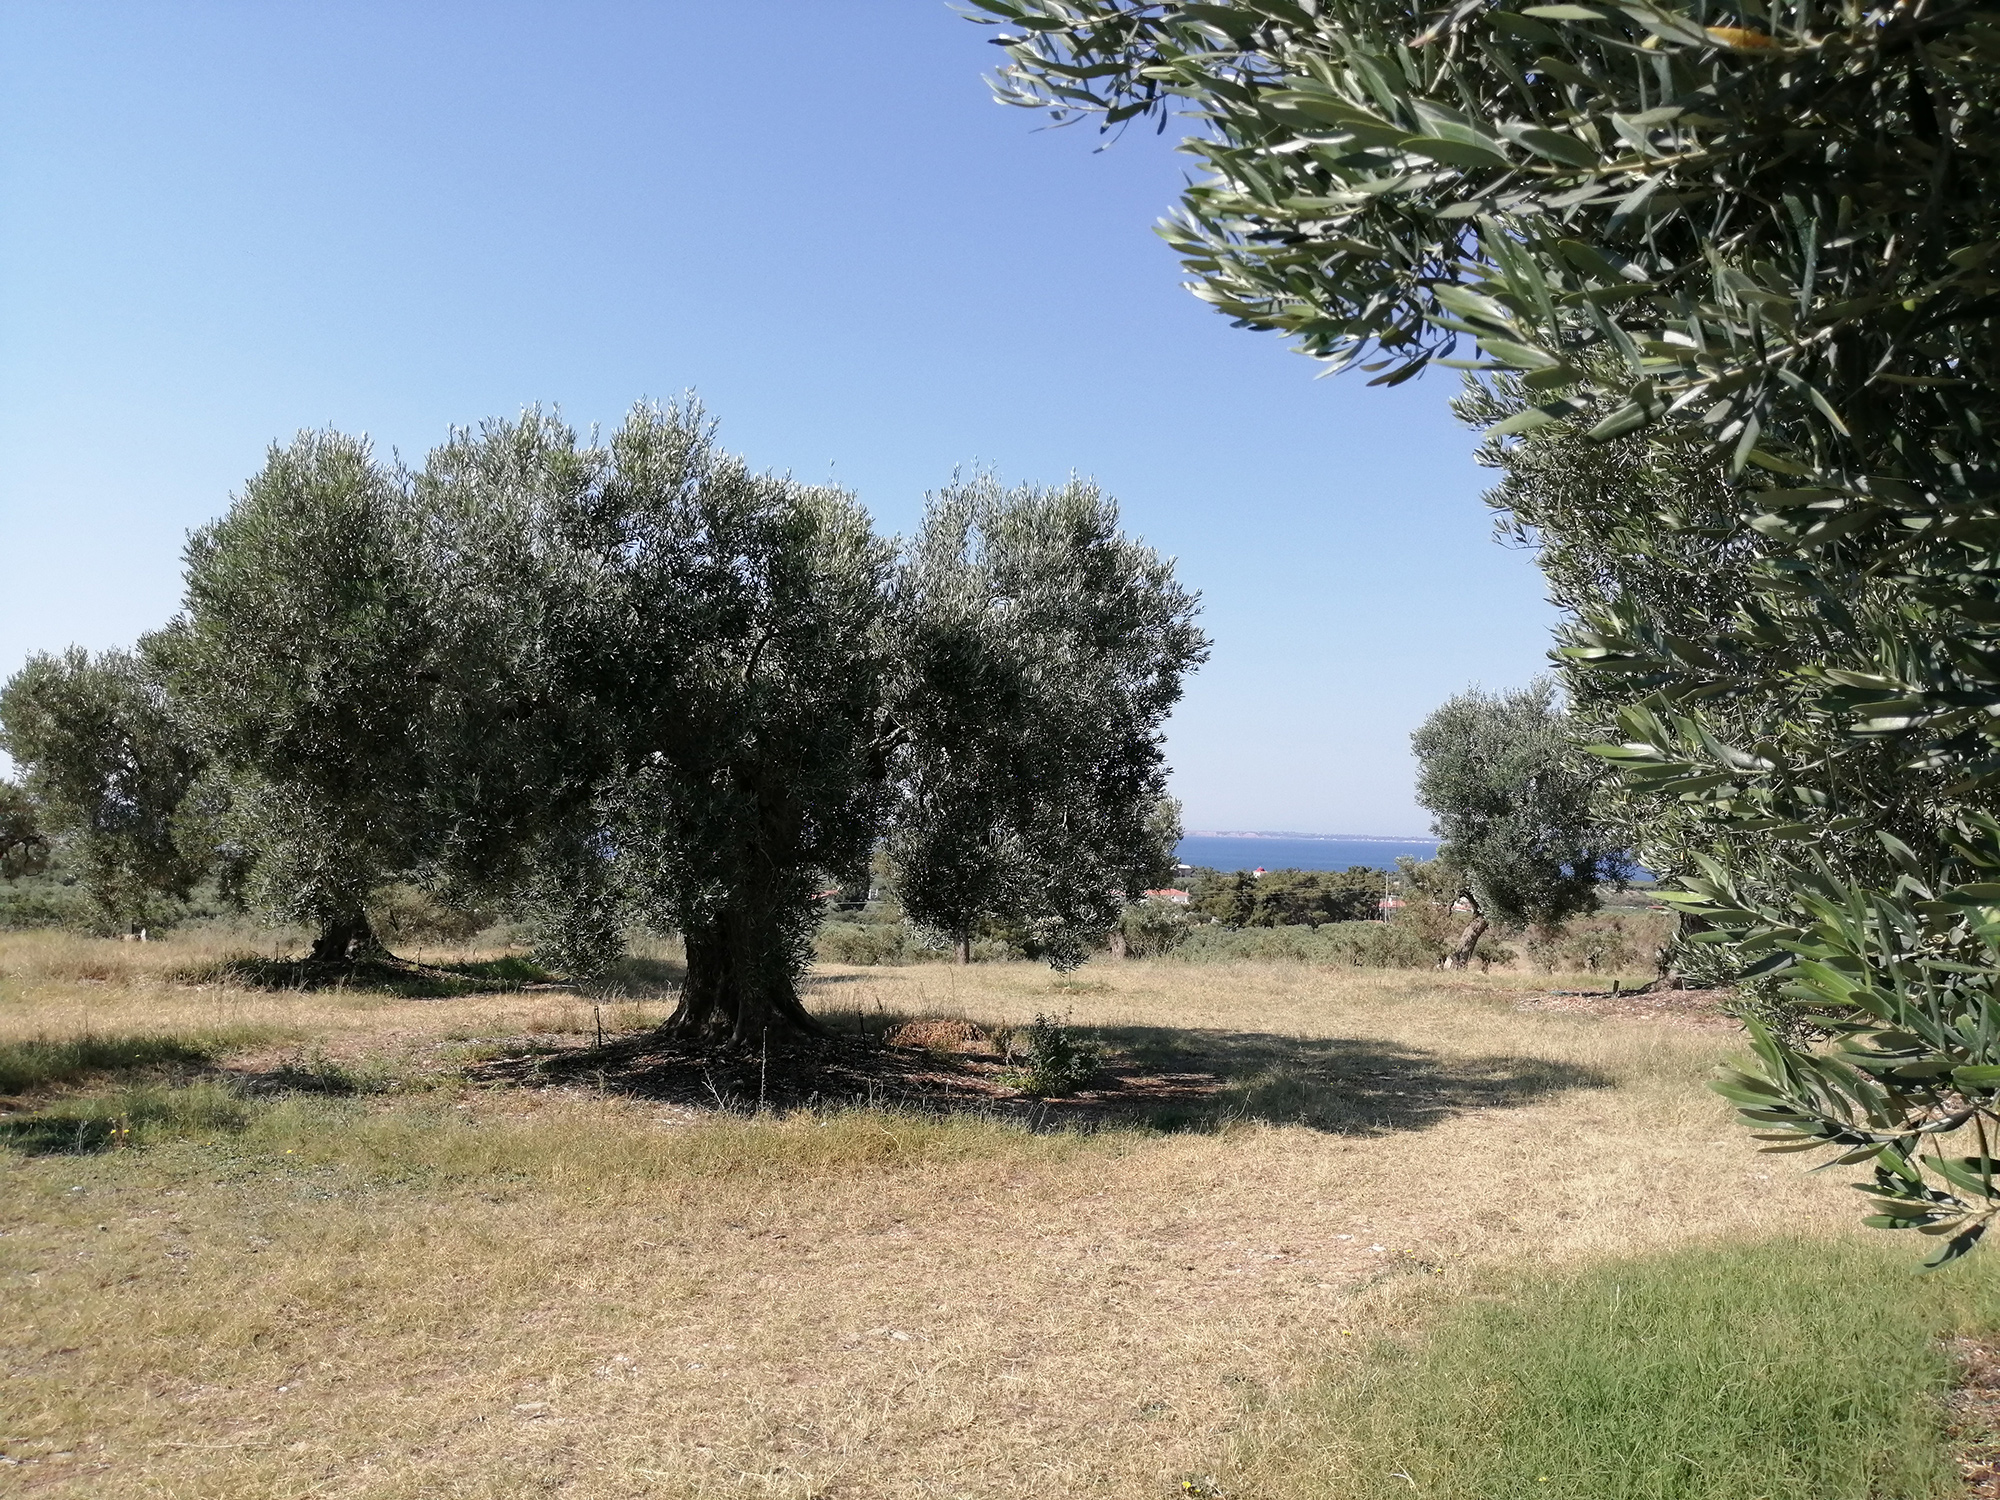 Olive tree at Yerakini Mines